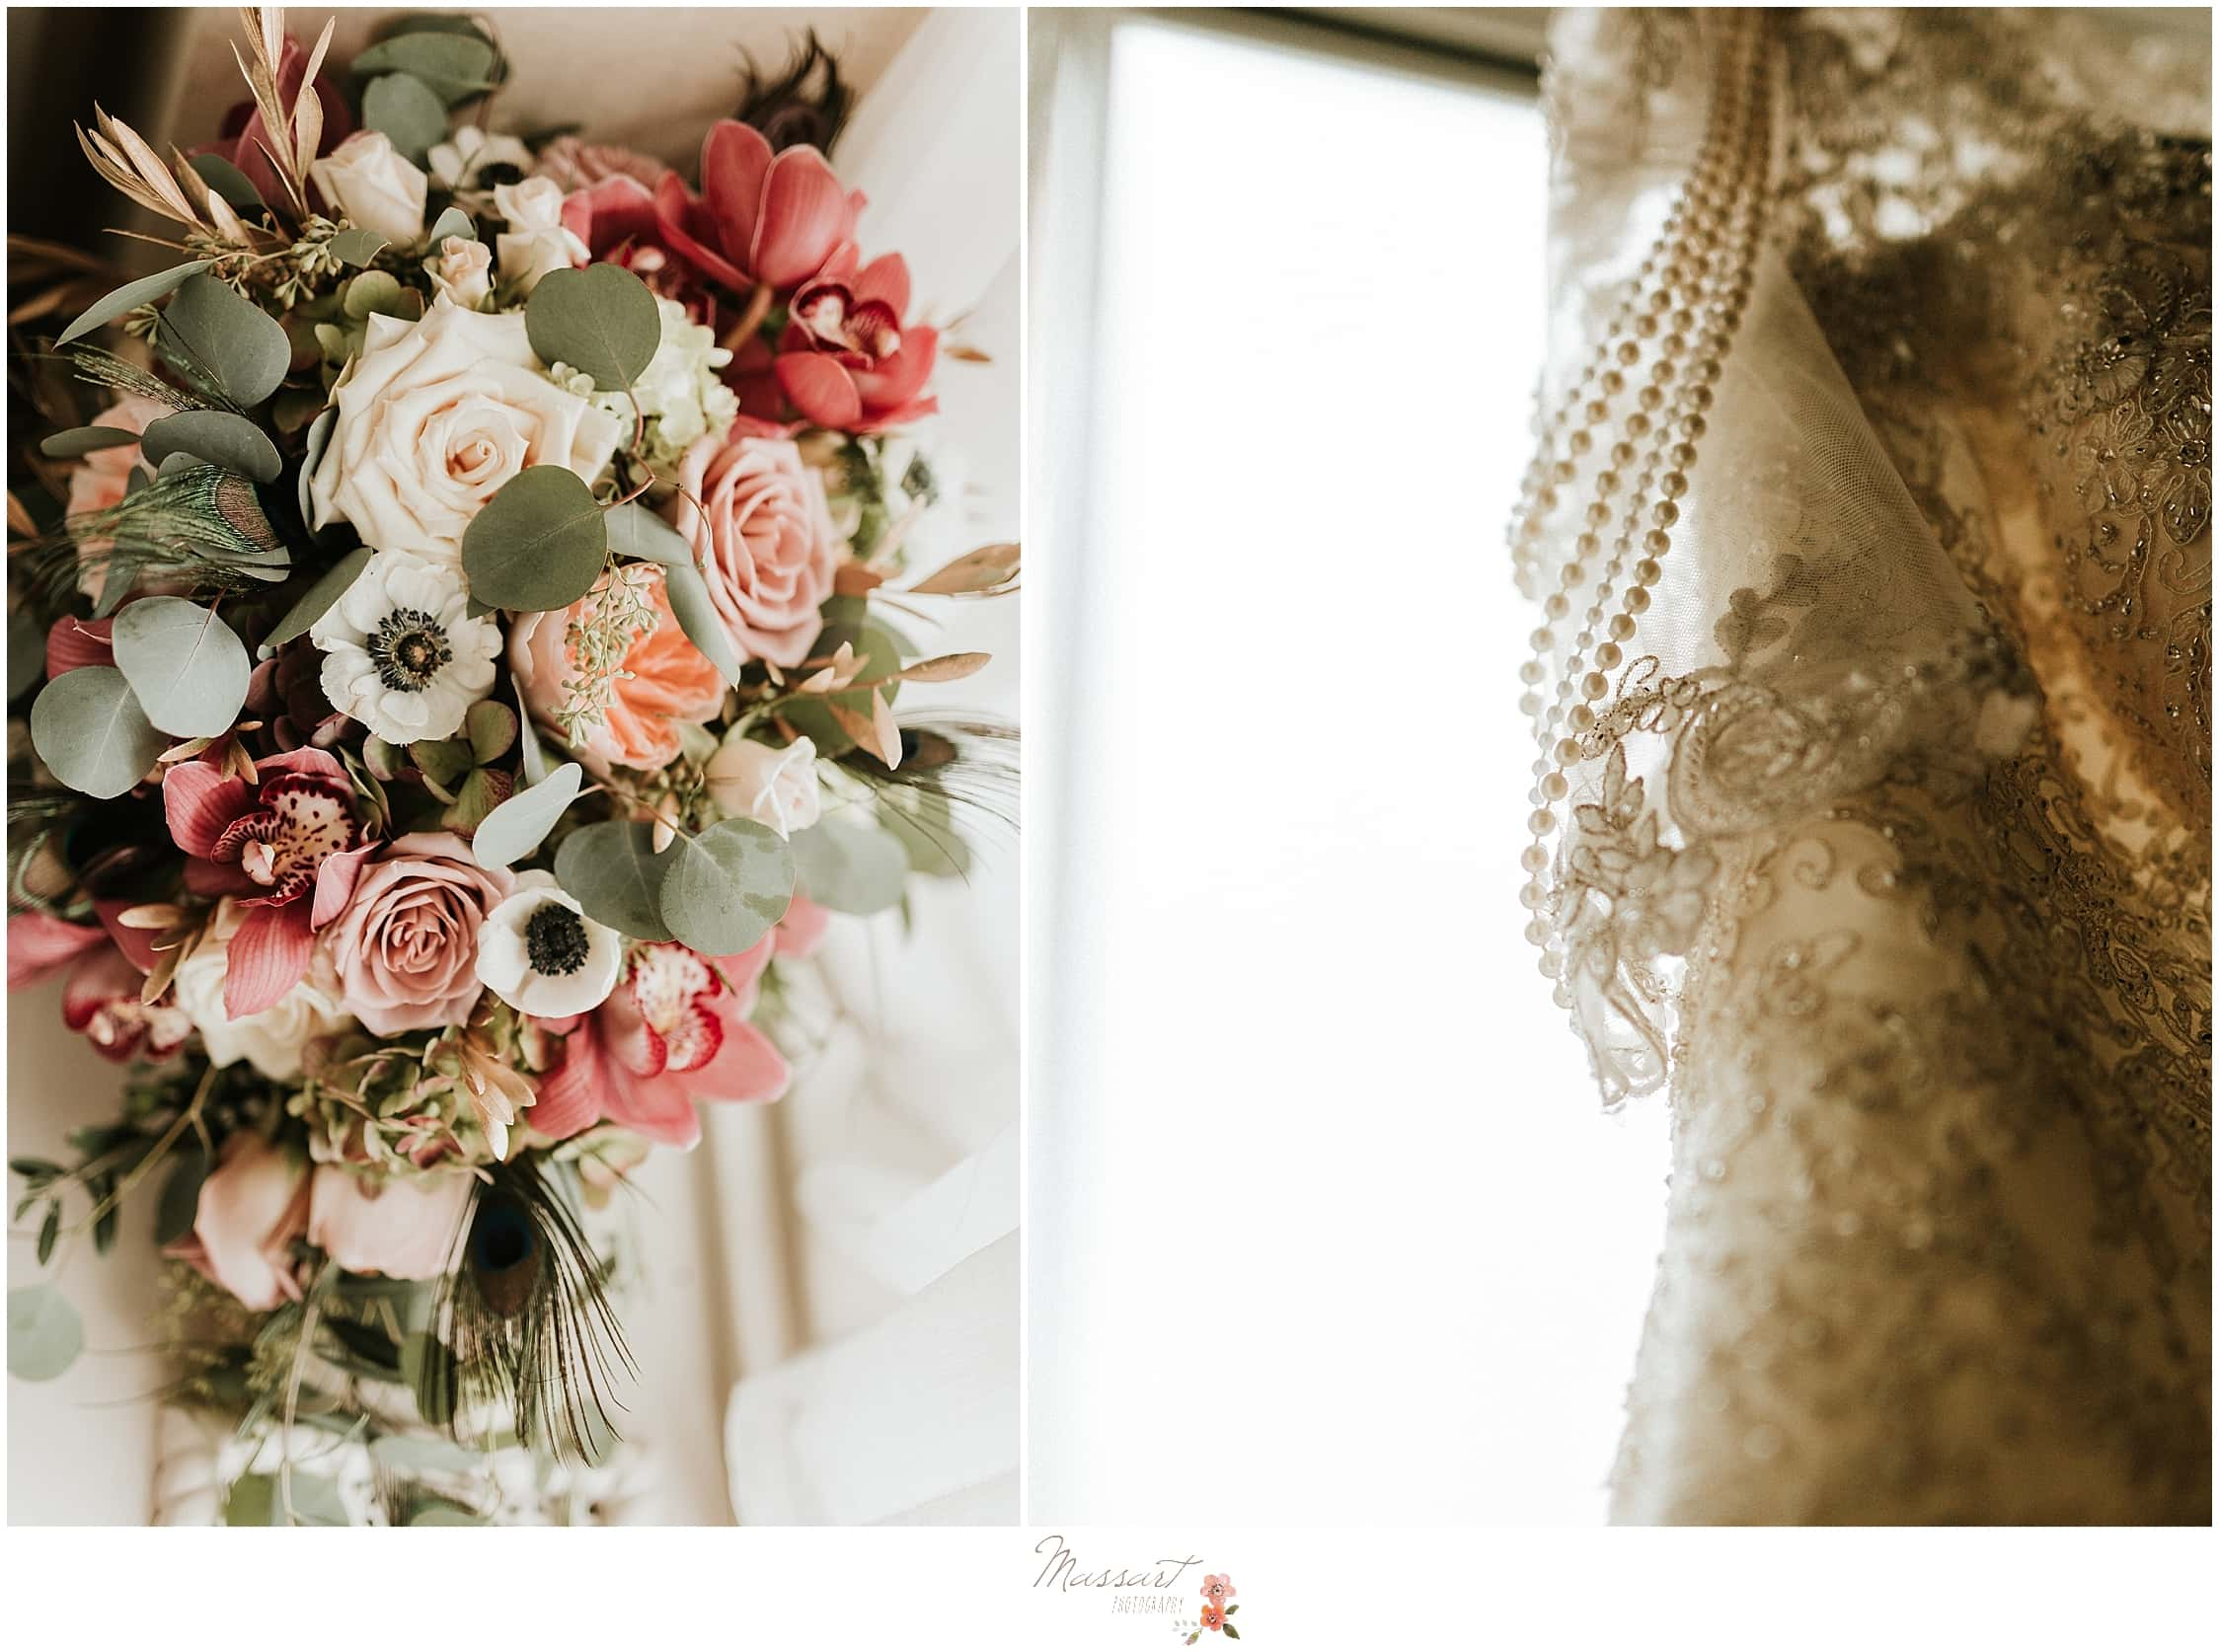 Ivory and pink wedding bouquet by Golden Gate Studios photographed by RI wedding photographers Massart Photography